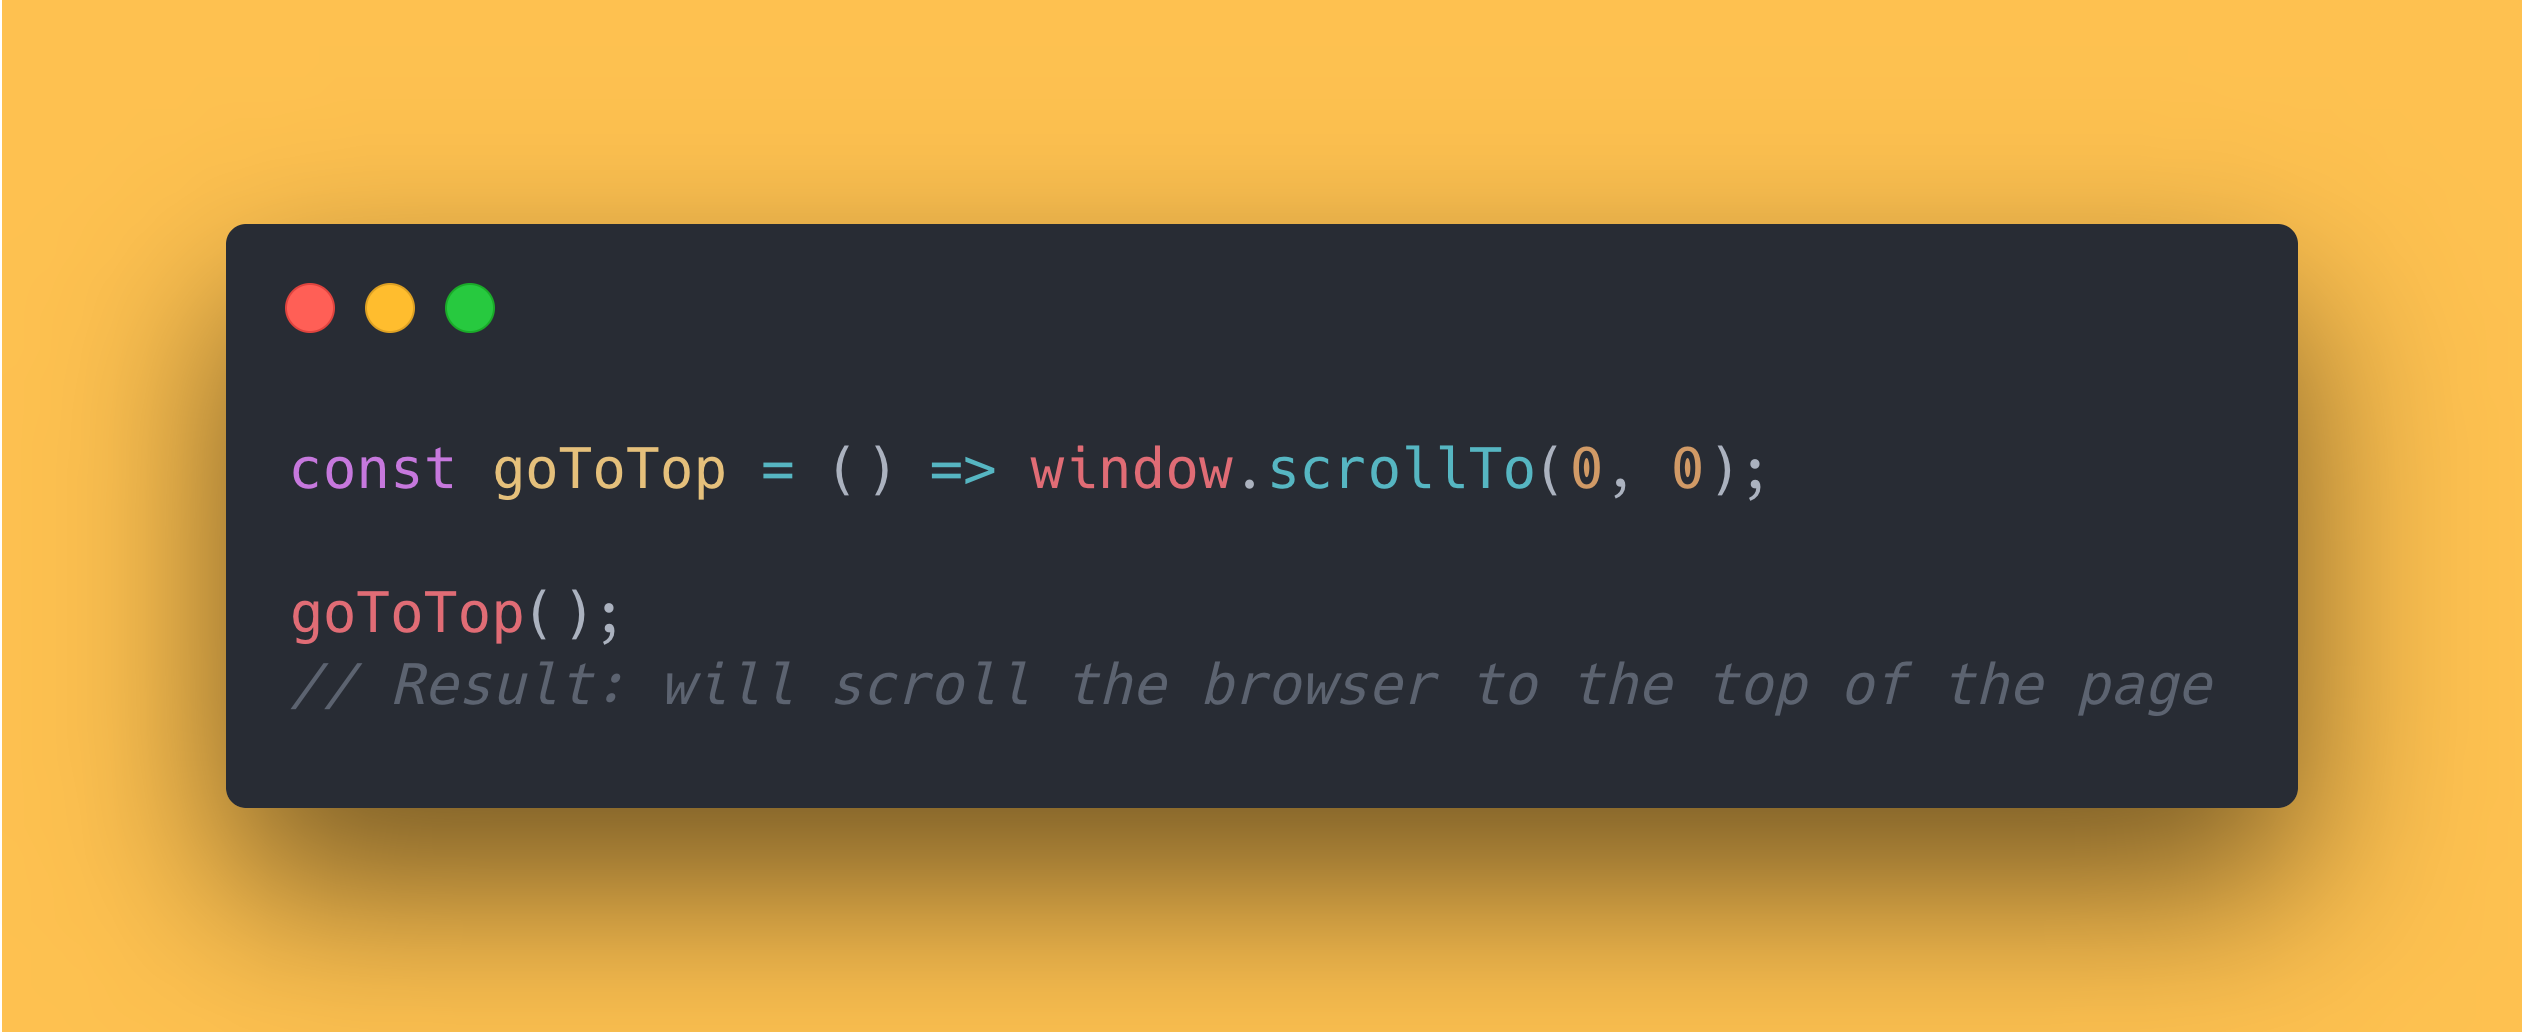 JS code block showing how the browser to the top using the scrollTo method.